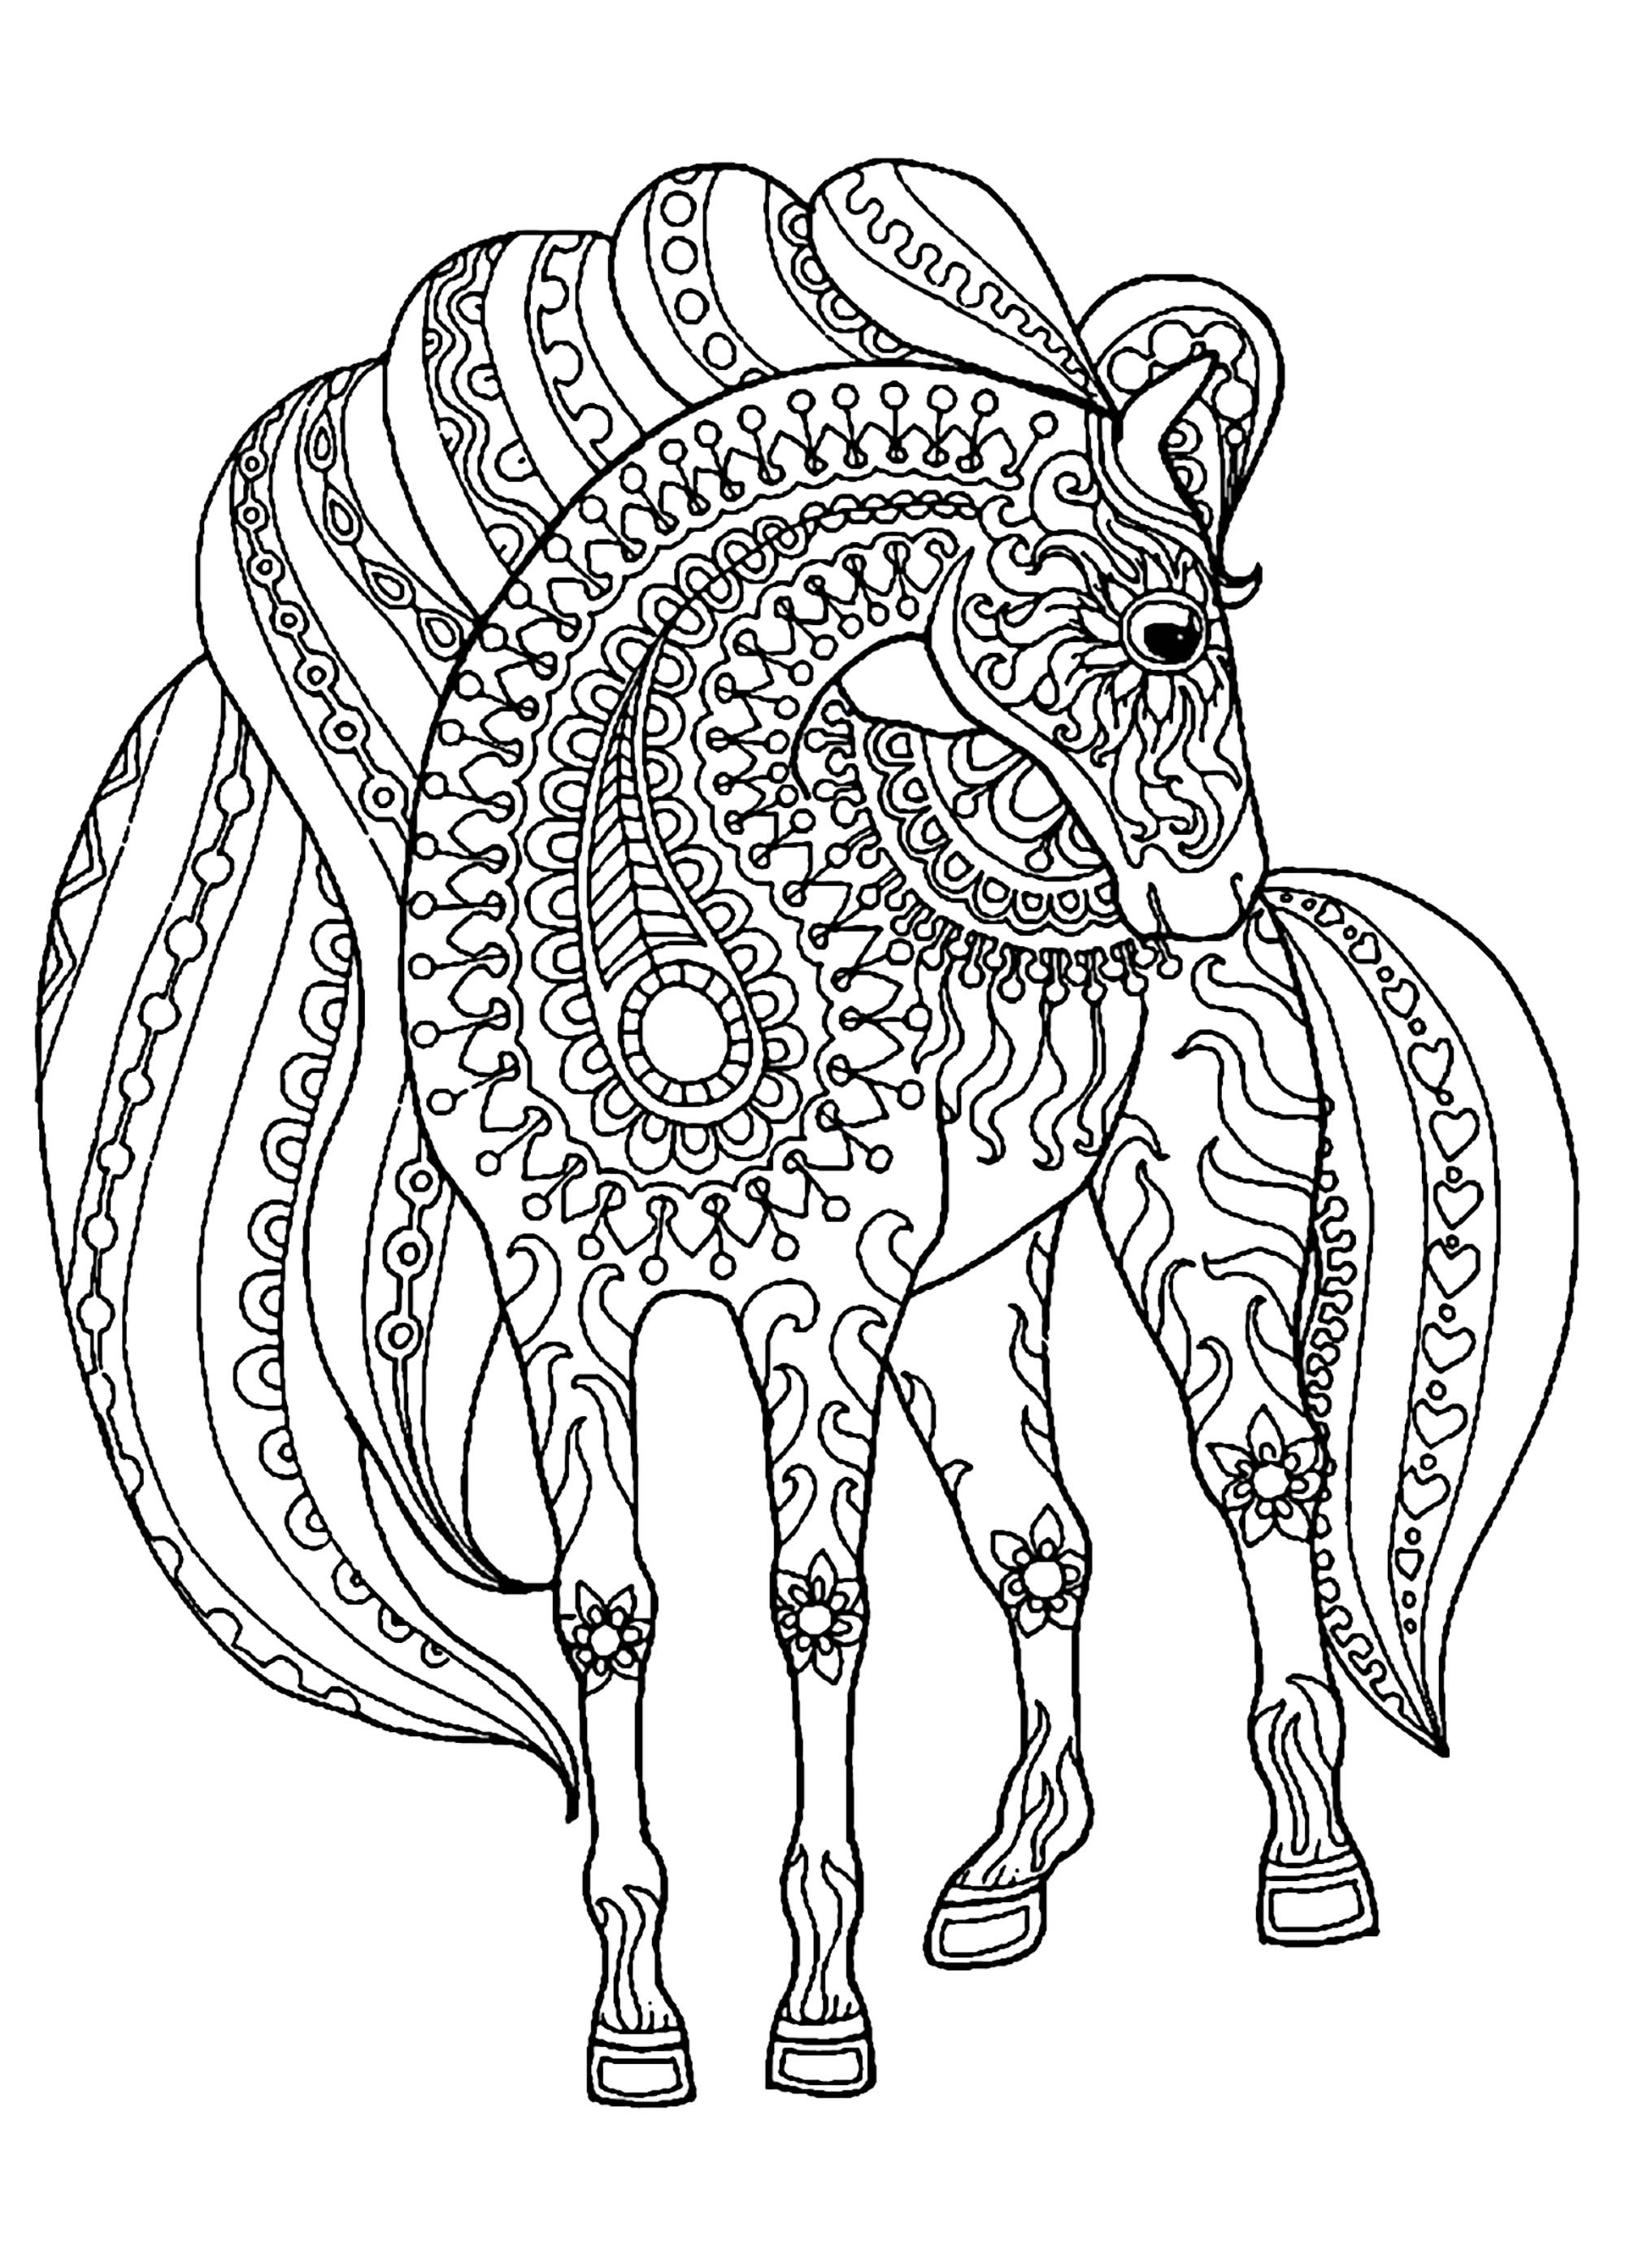 horses for free wild horse coloring pages at getcoloringscom free horses for free